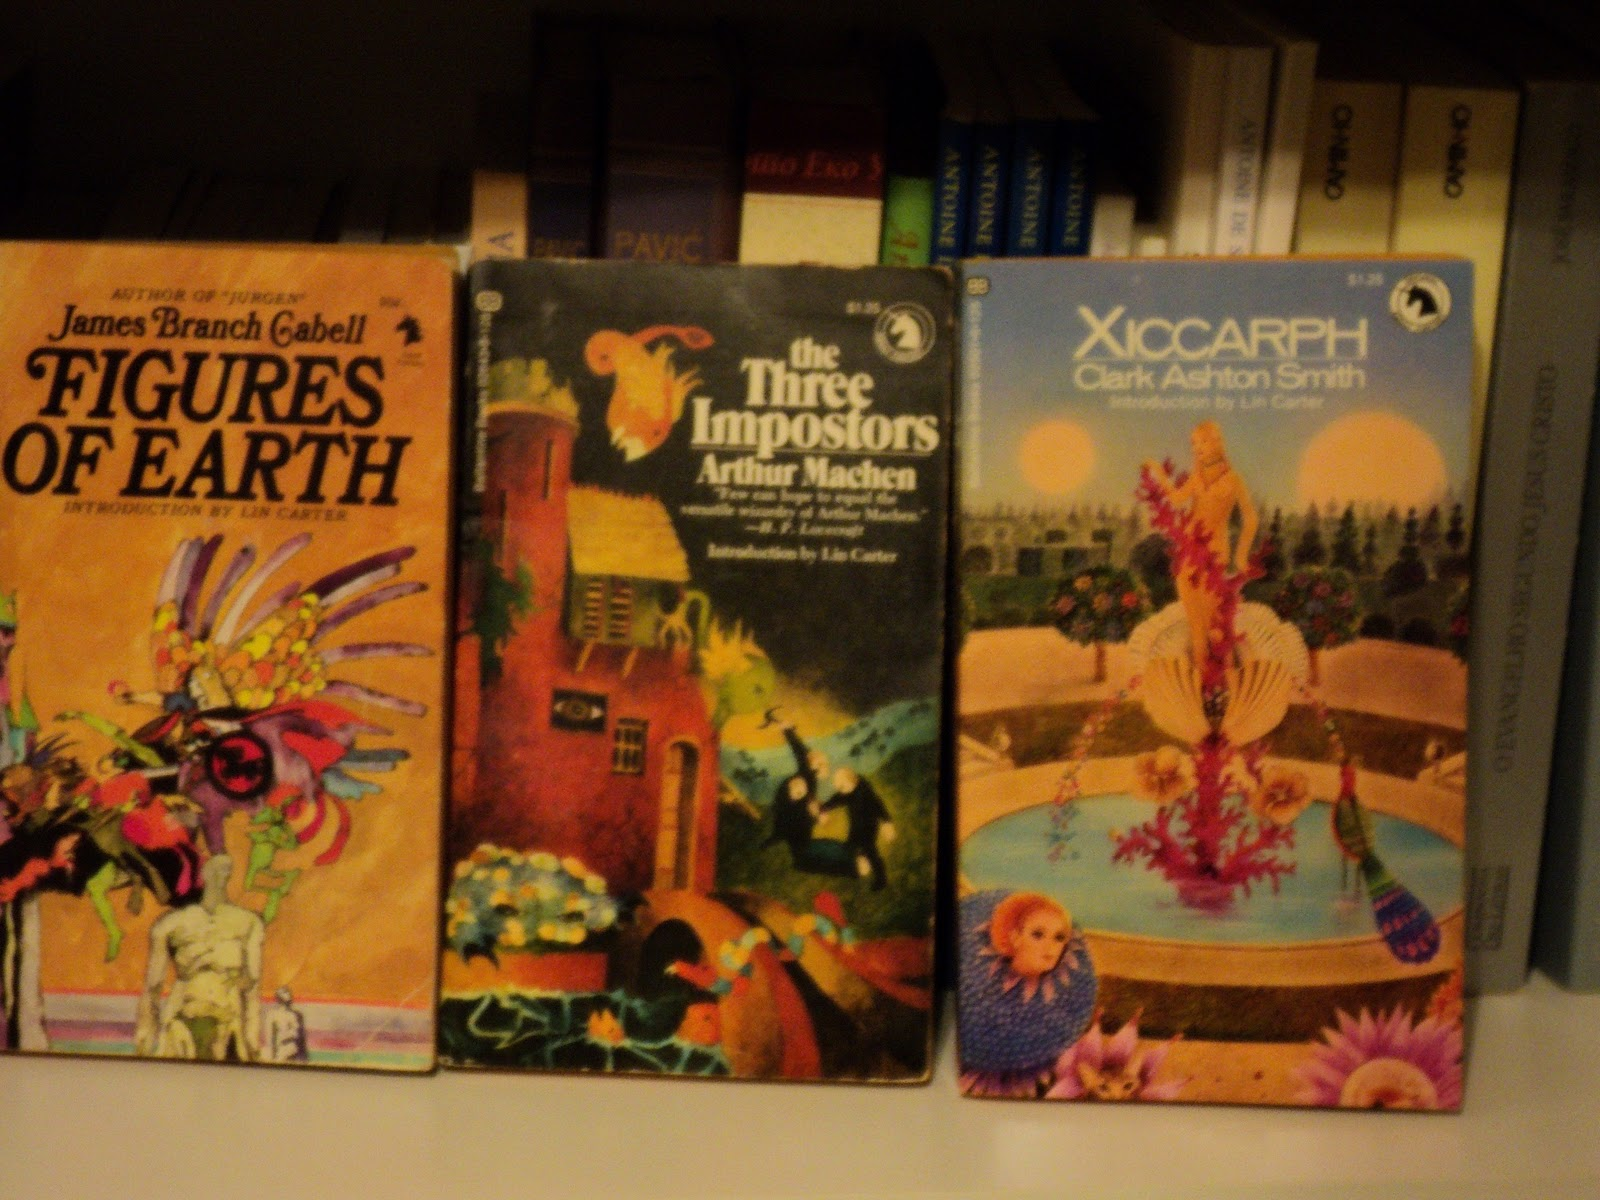 Update on the Ballantine Adult Fantasy Series books I now own: Part I